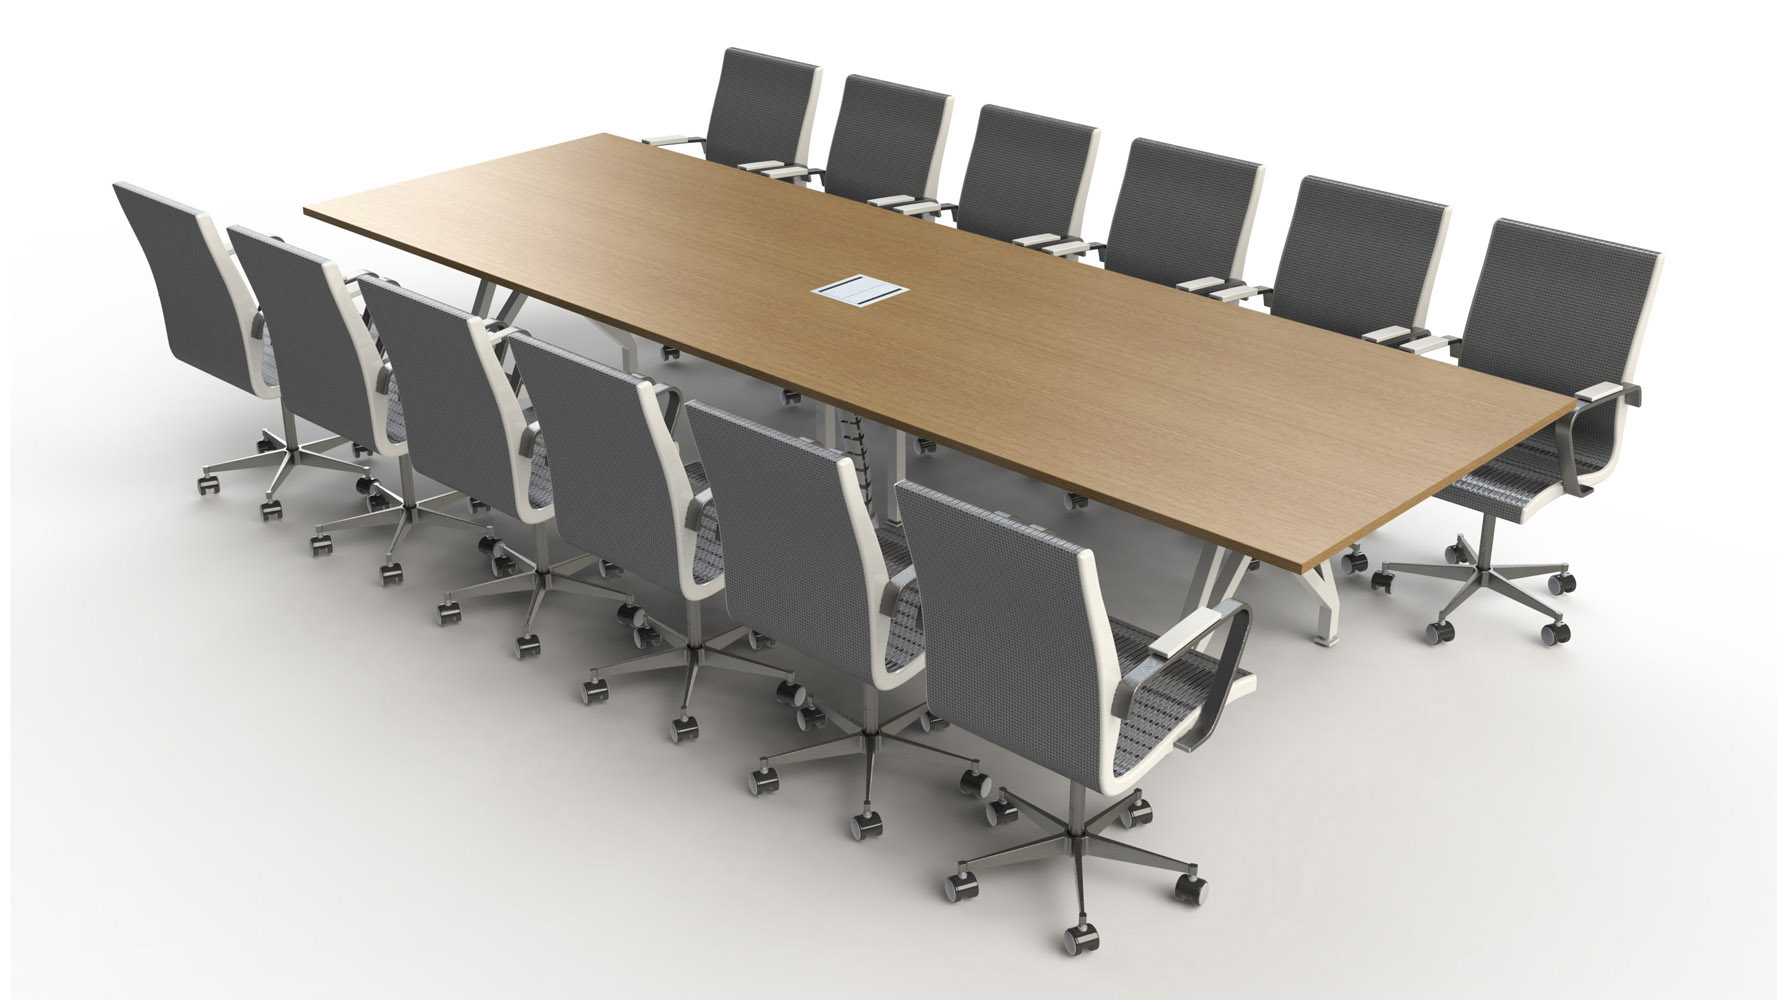 Think tank conference table 14ft zuri furniture for 12 conference table